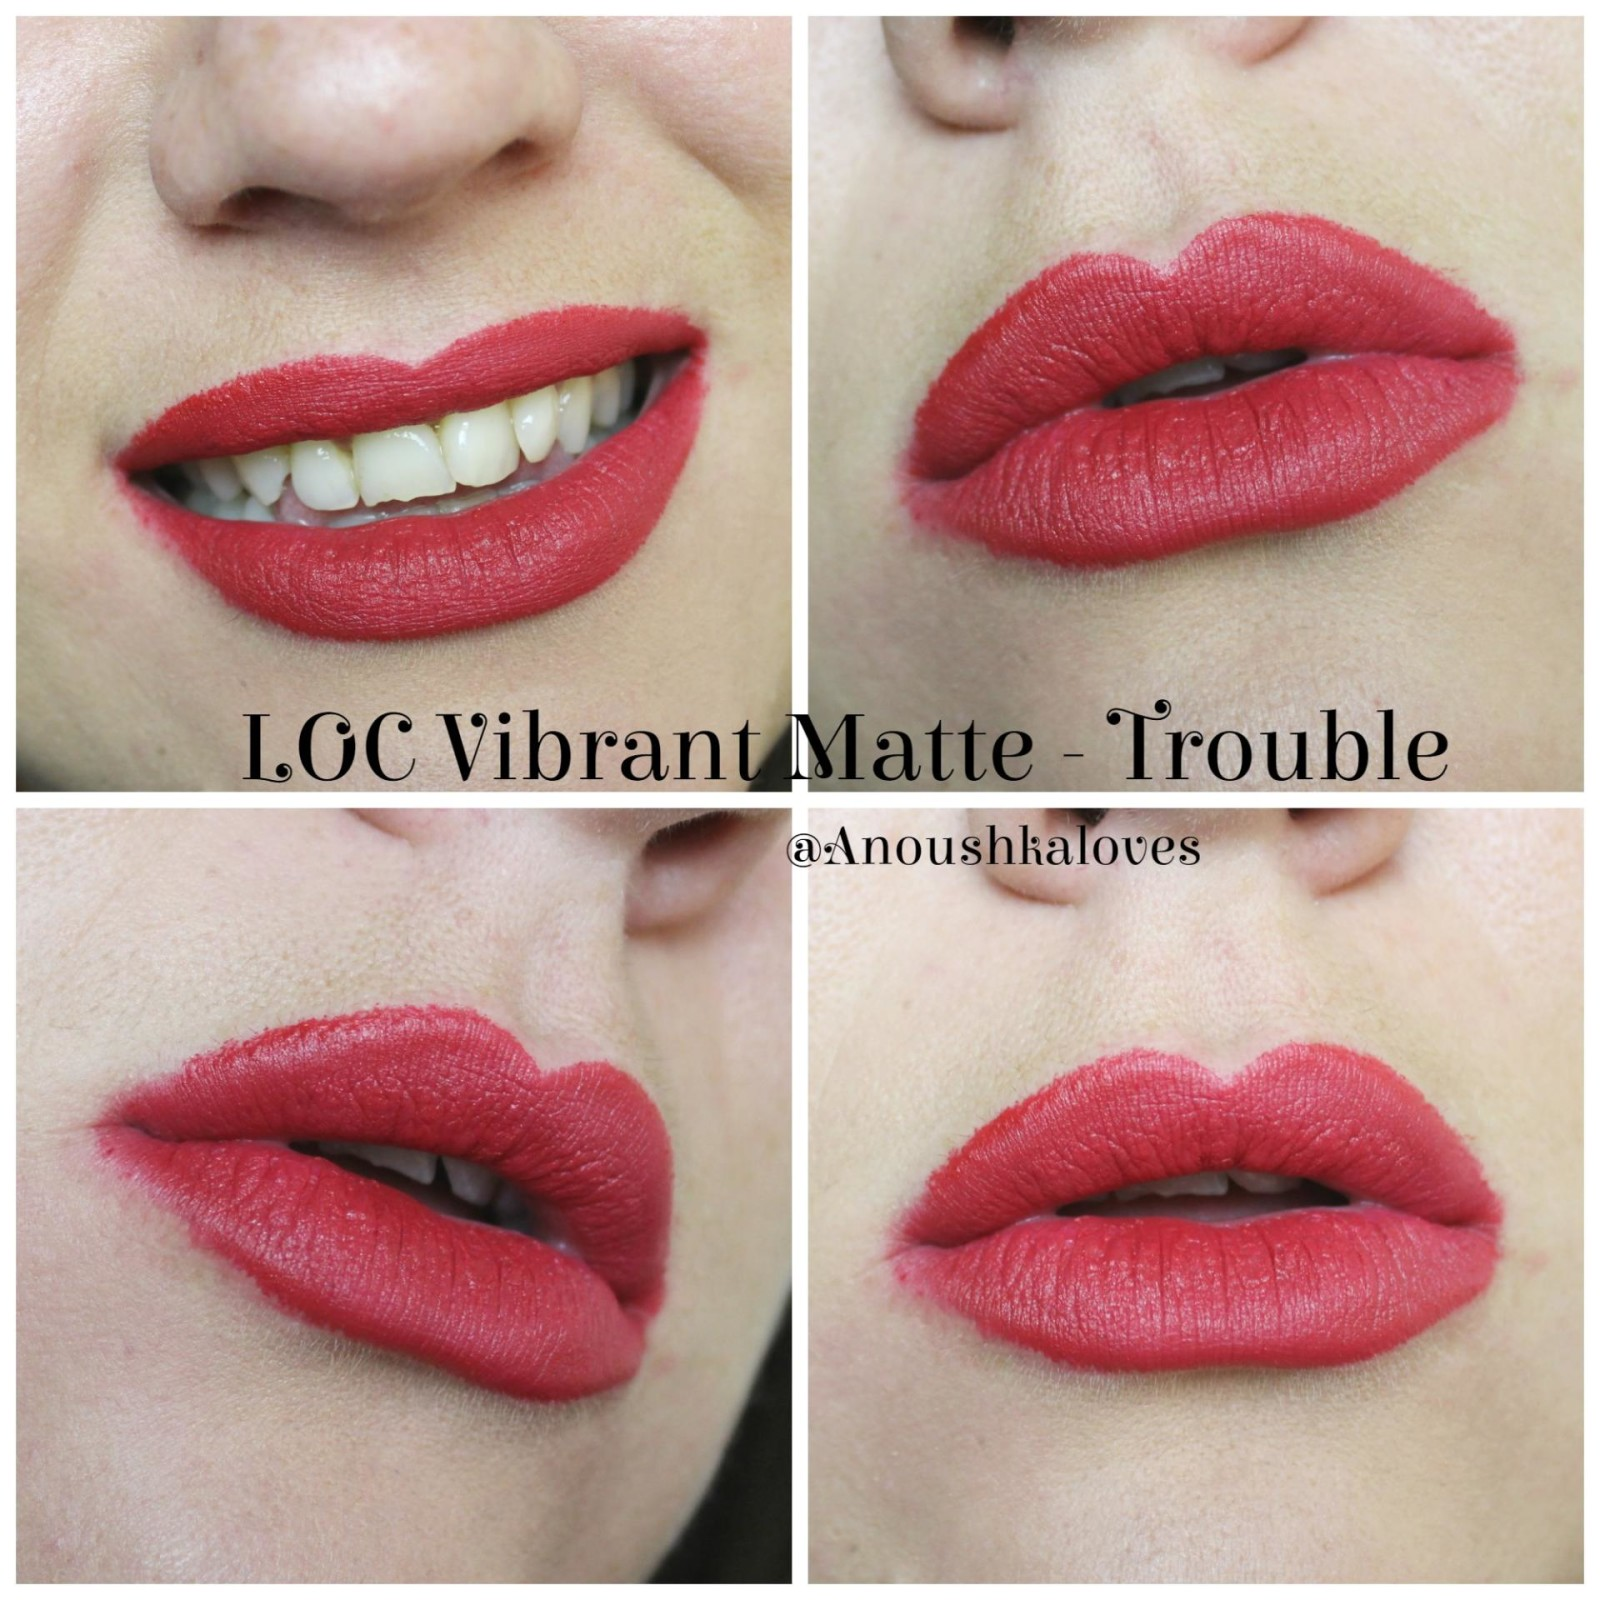 Birchbox Archives Anoushka Loves Brunbrun Paris Ultra Rich Lipstick Liquorice Loc By Vibrant Matte Lipsticks Trouble